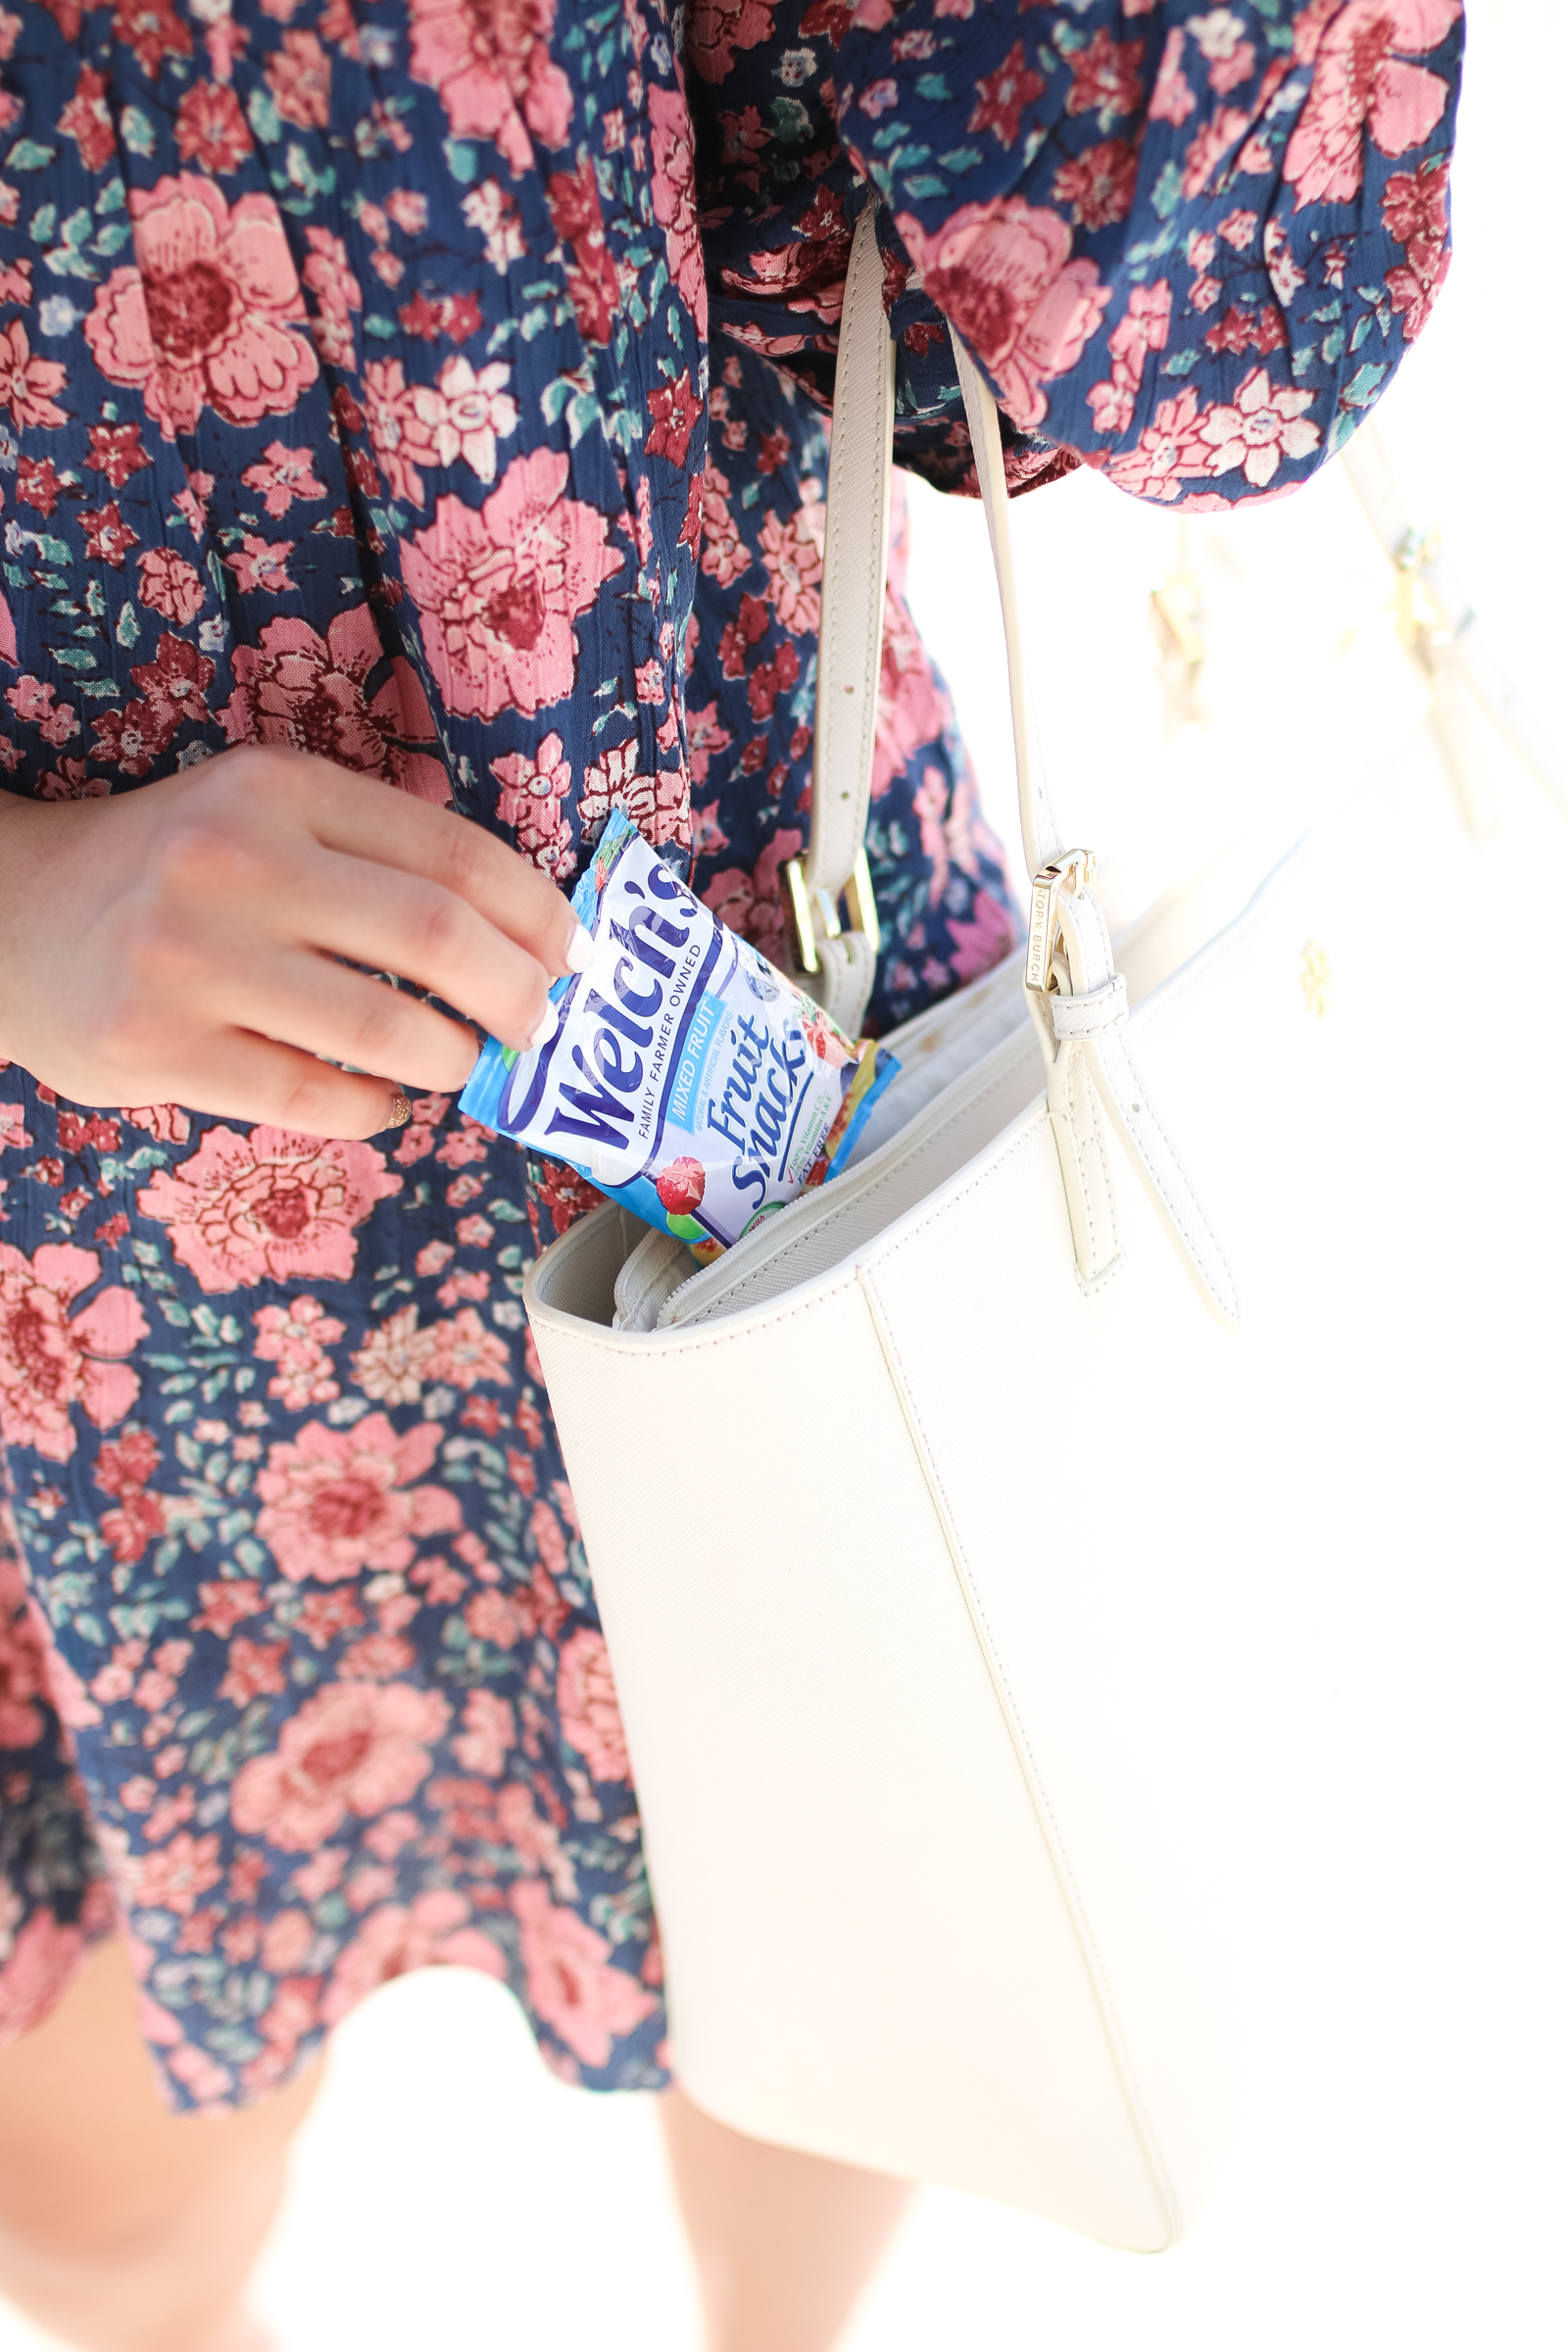 welch's fruit snacks - A Great Snack For Kids and Busy Moms by Utah mom blogger Sandy A La Mode